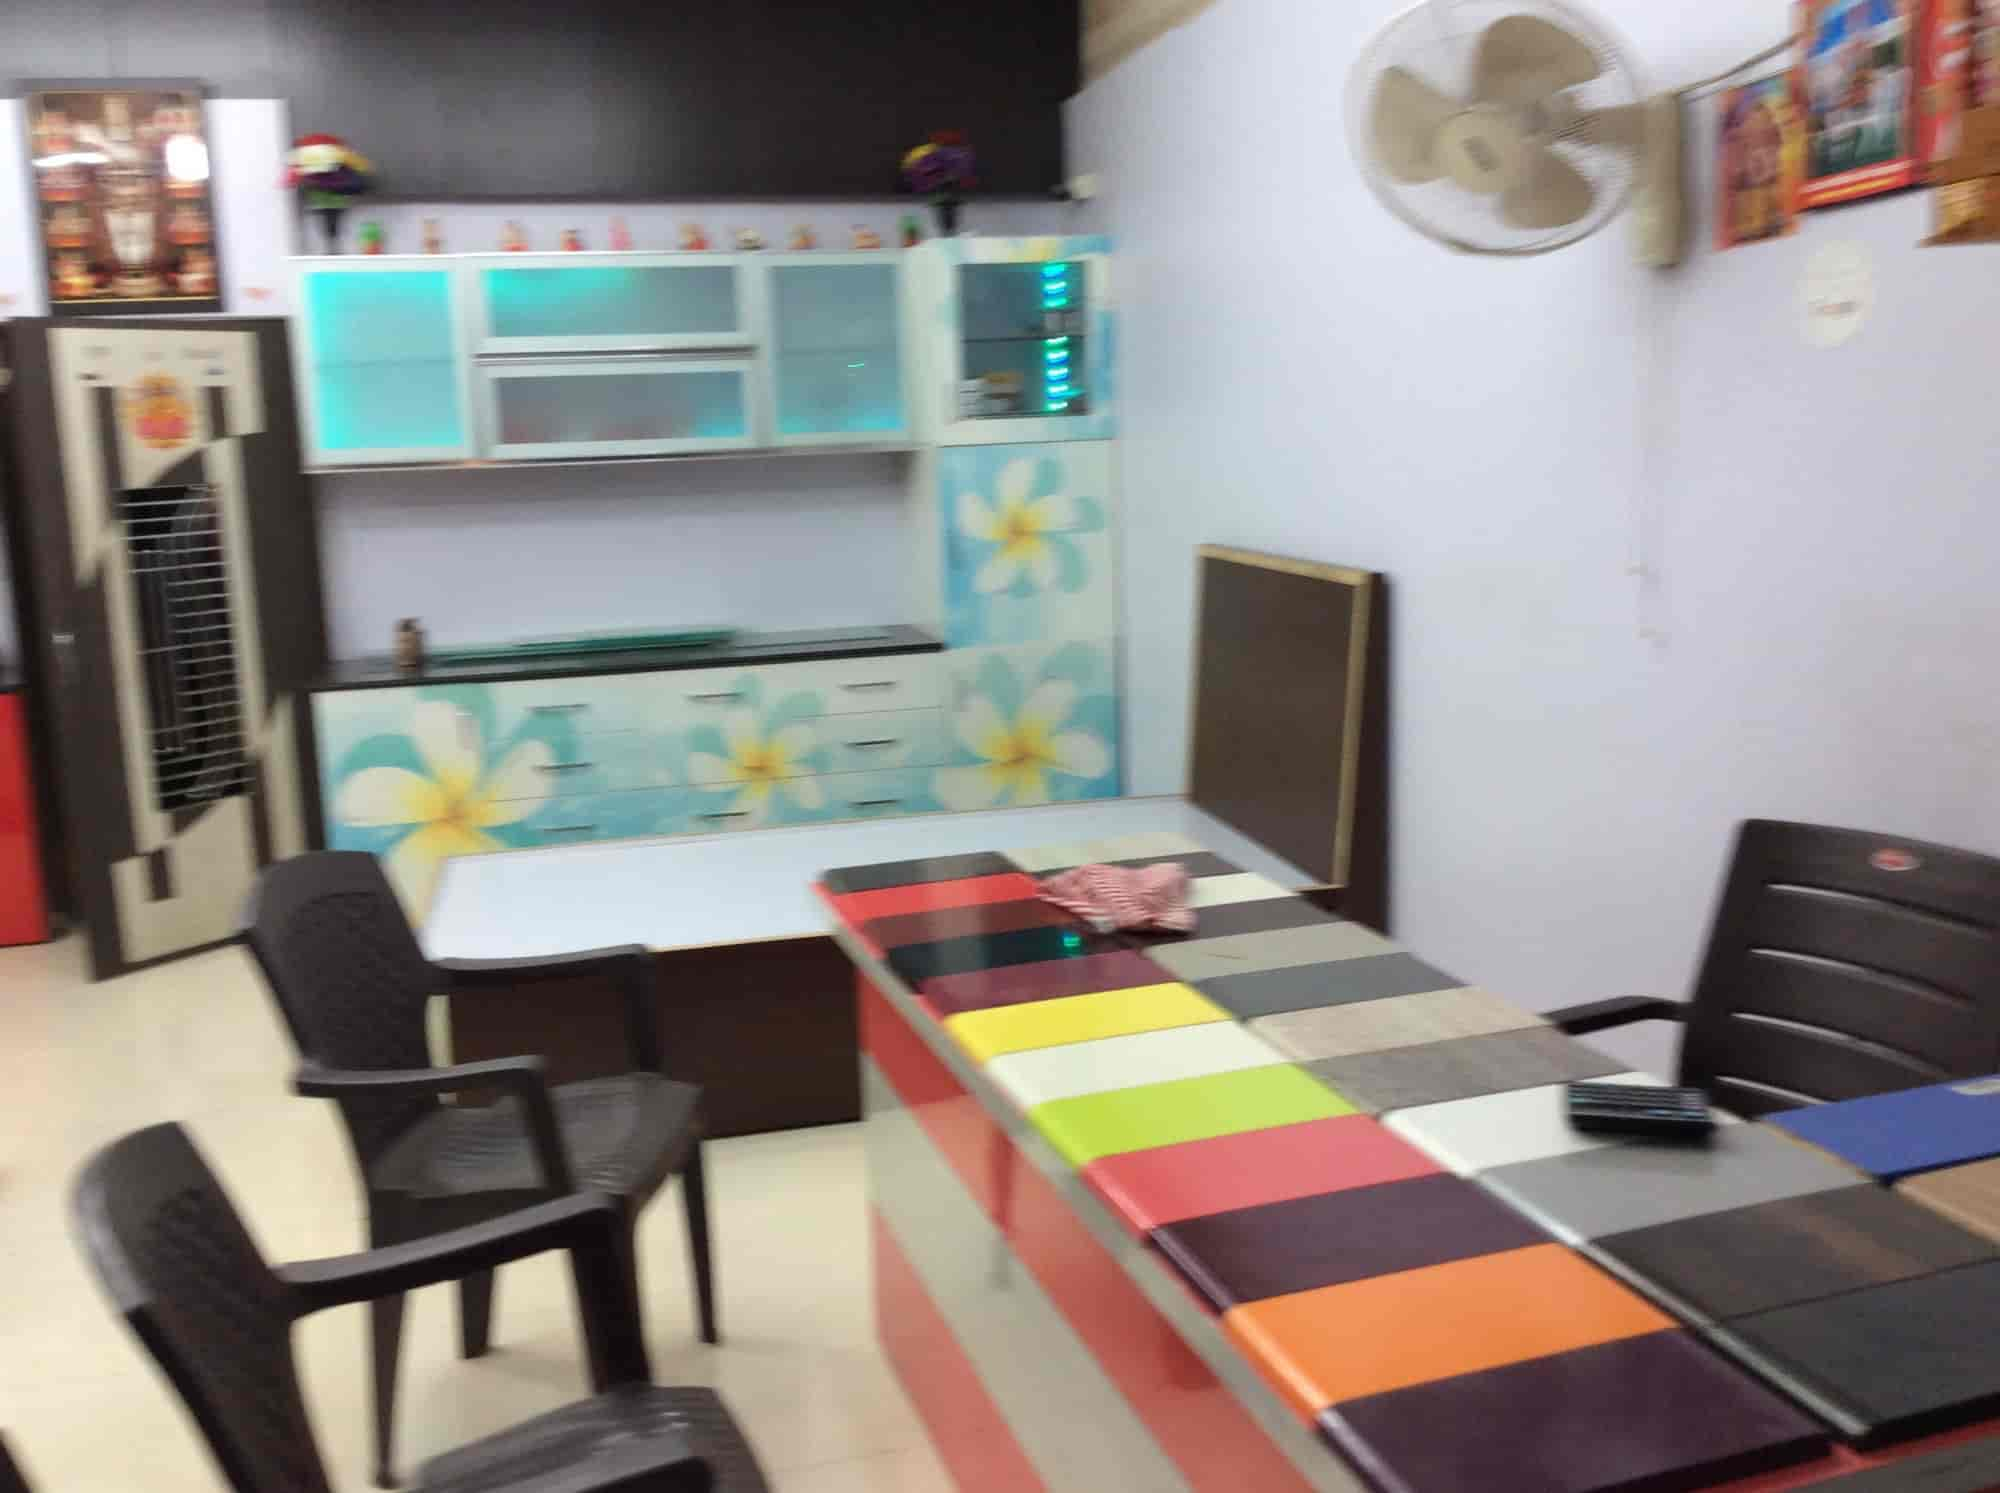 Khushi Kitchen Decor, Wakad - Kitchen Trolley Dealers in Pune - Justdial